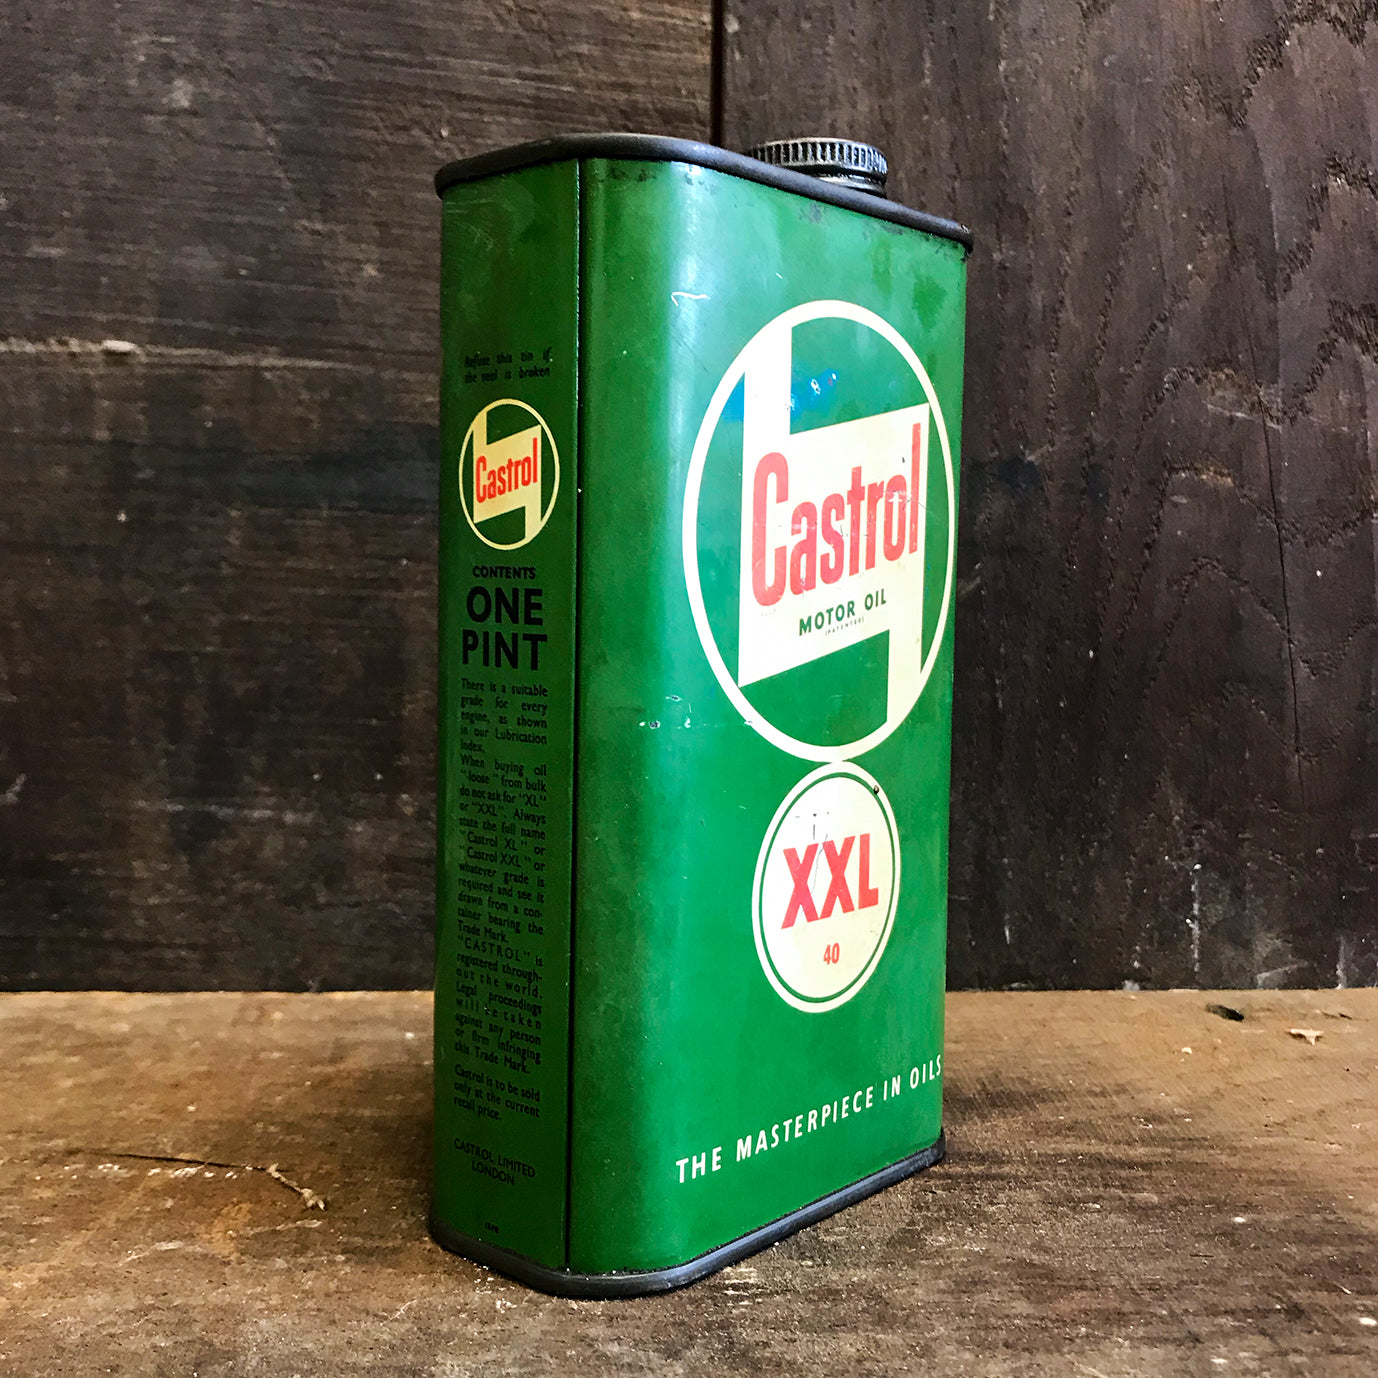 Cool Vintage Castrol XXL 40 1 Pint Can in very good condition for its age. Great for your vintage garage or Man Cave - SHOP NOW - www.intovintage.co.uk